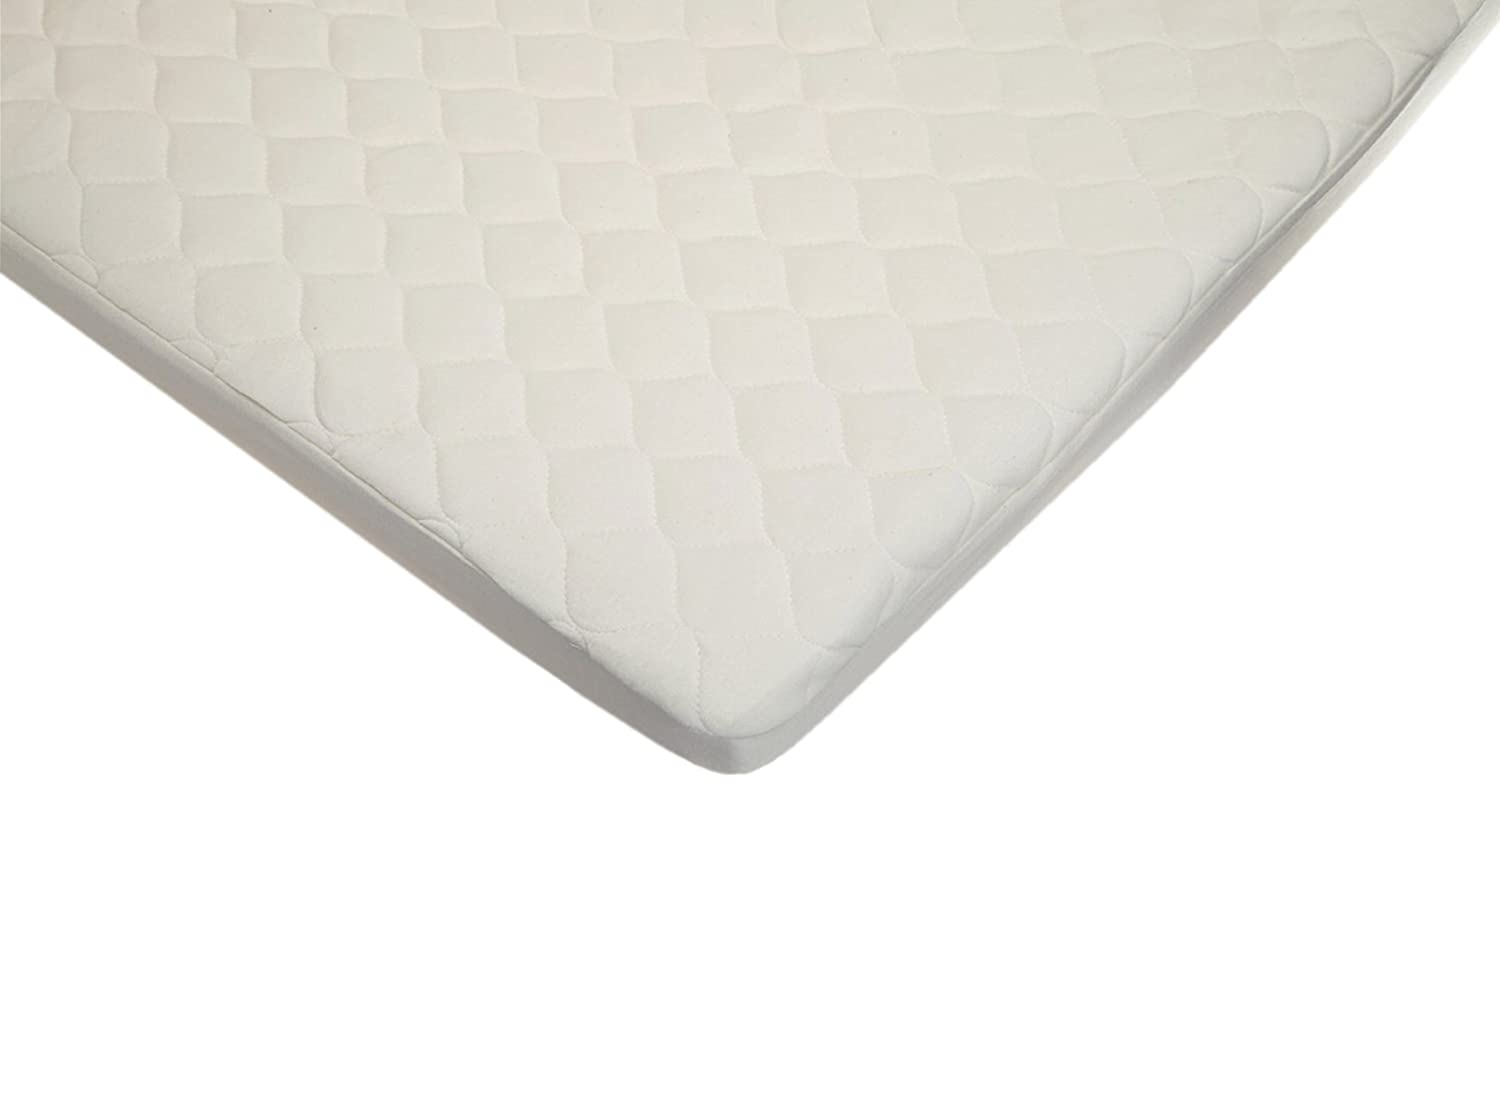 American Baby Company Waterproof Quilted Crib and Toddler Size Fitted Mattress Cover made with Organic Cotton, Natural Color 82763